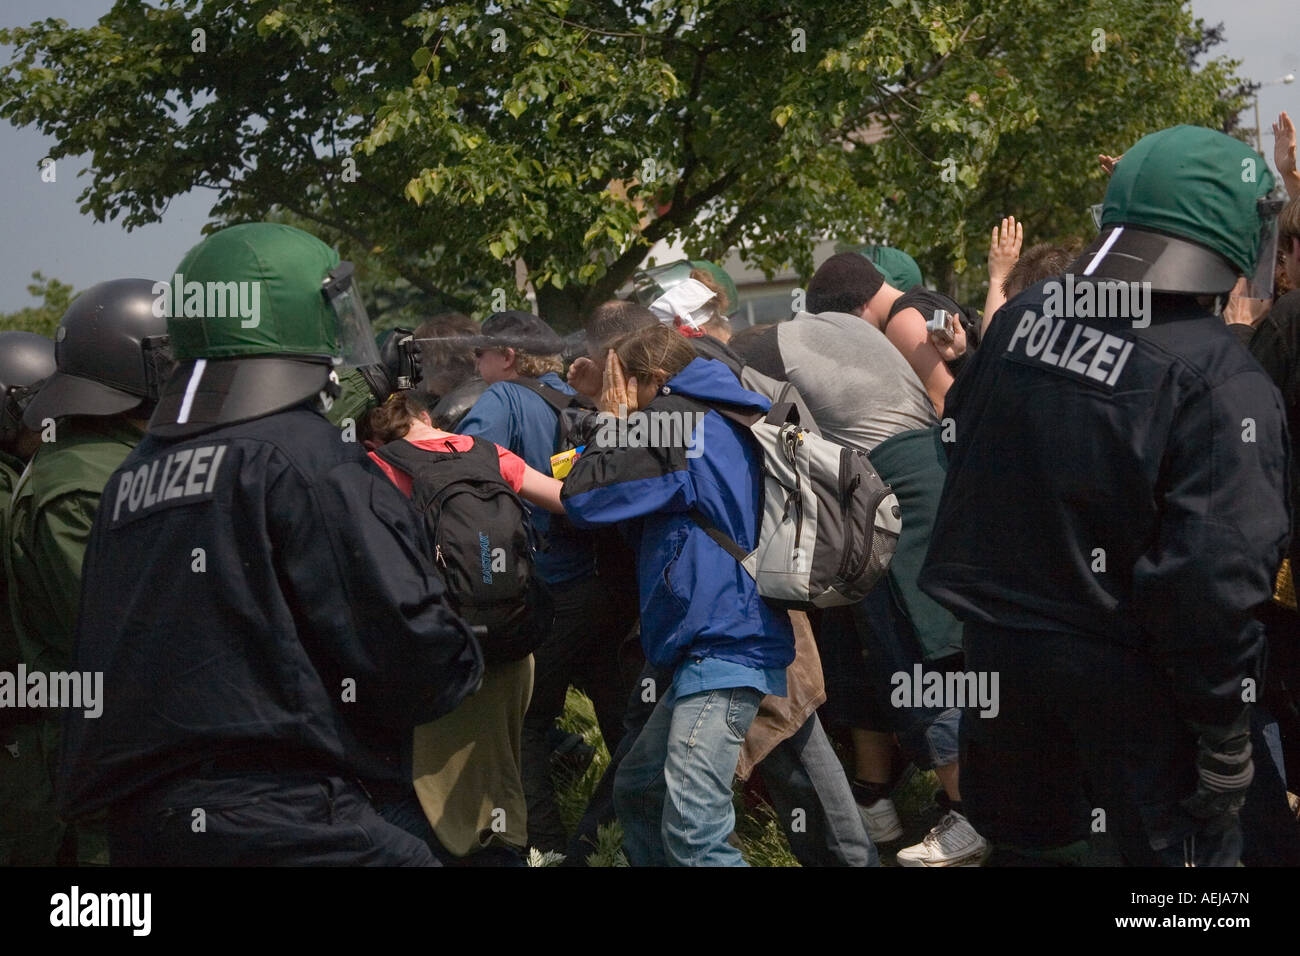 Policemen using pepper spray on protesters against the G-8 summit, Mecklenburg-Western Pomerania, Germany - Stock Image